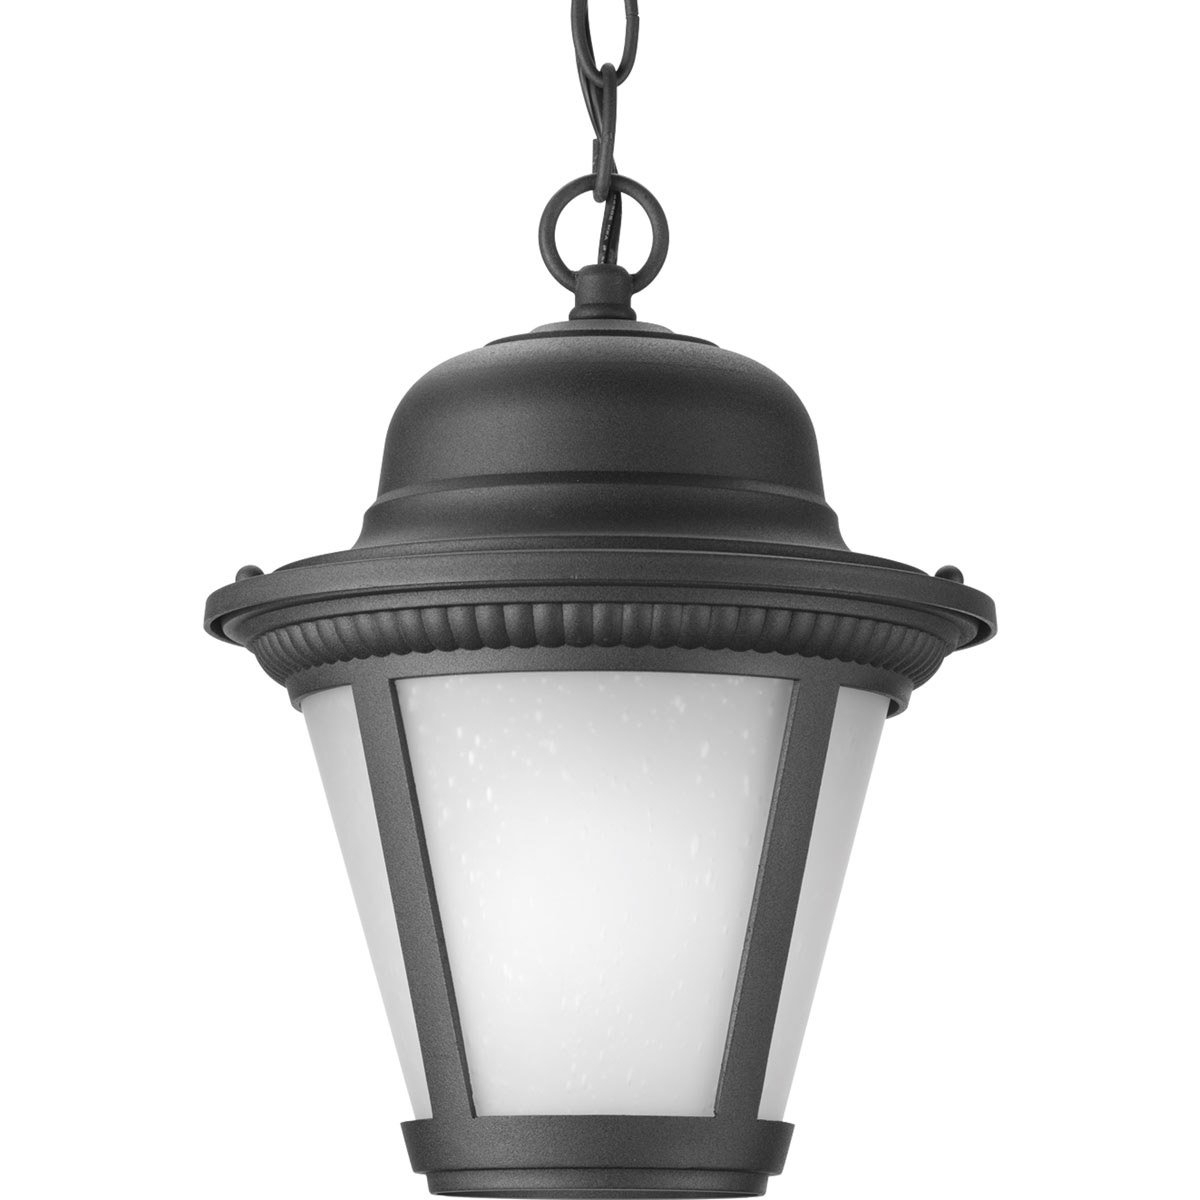 Progress Lighting P5530 3130K9 Westport Led 9 Inch Black Outdoor Throughout Widely Used Led Outdoor Hanging Lanterns (View 12 of 20)